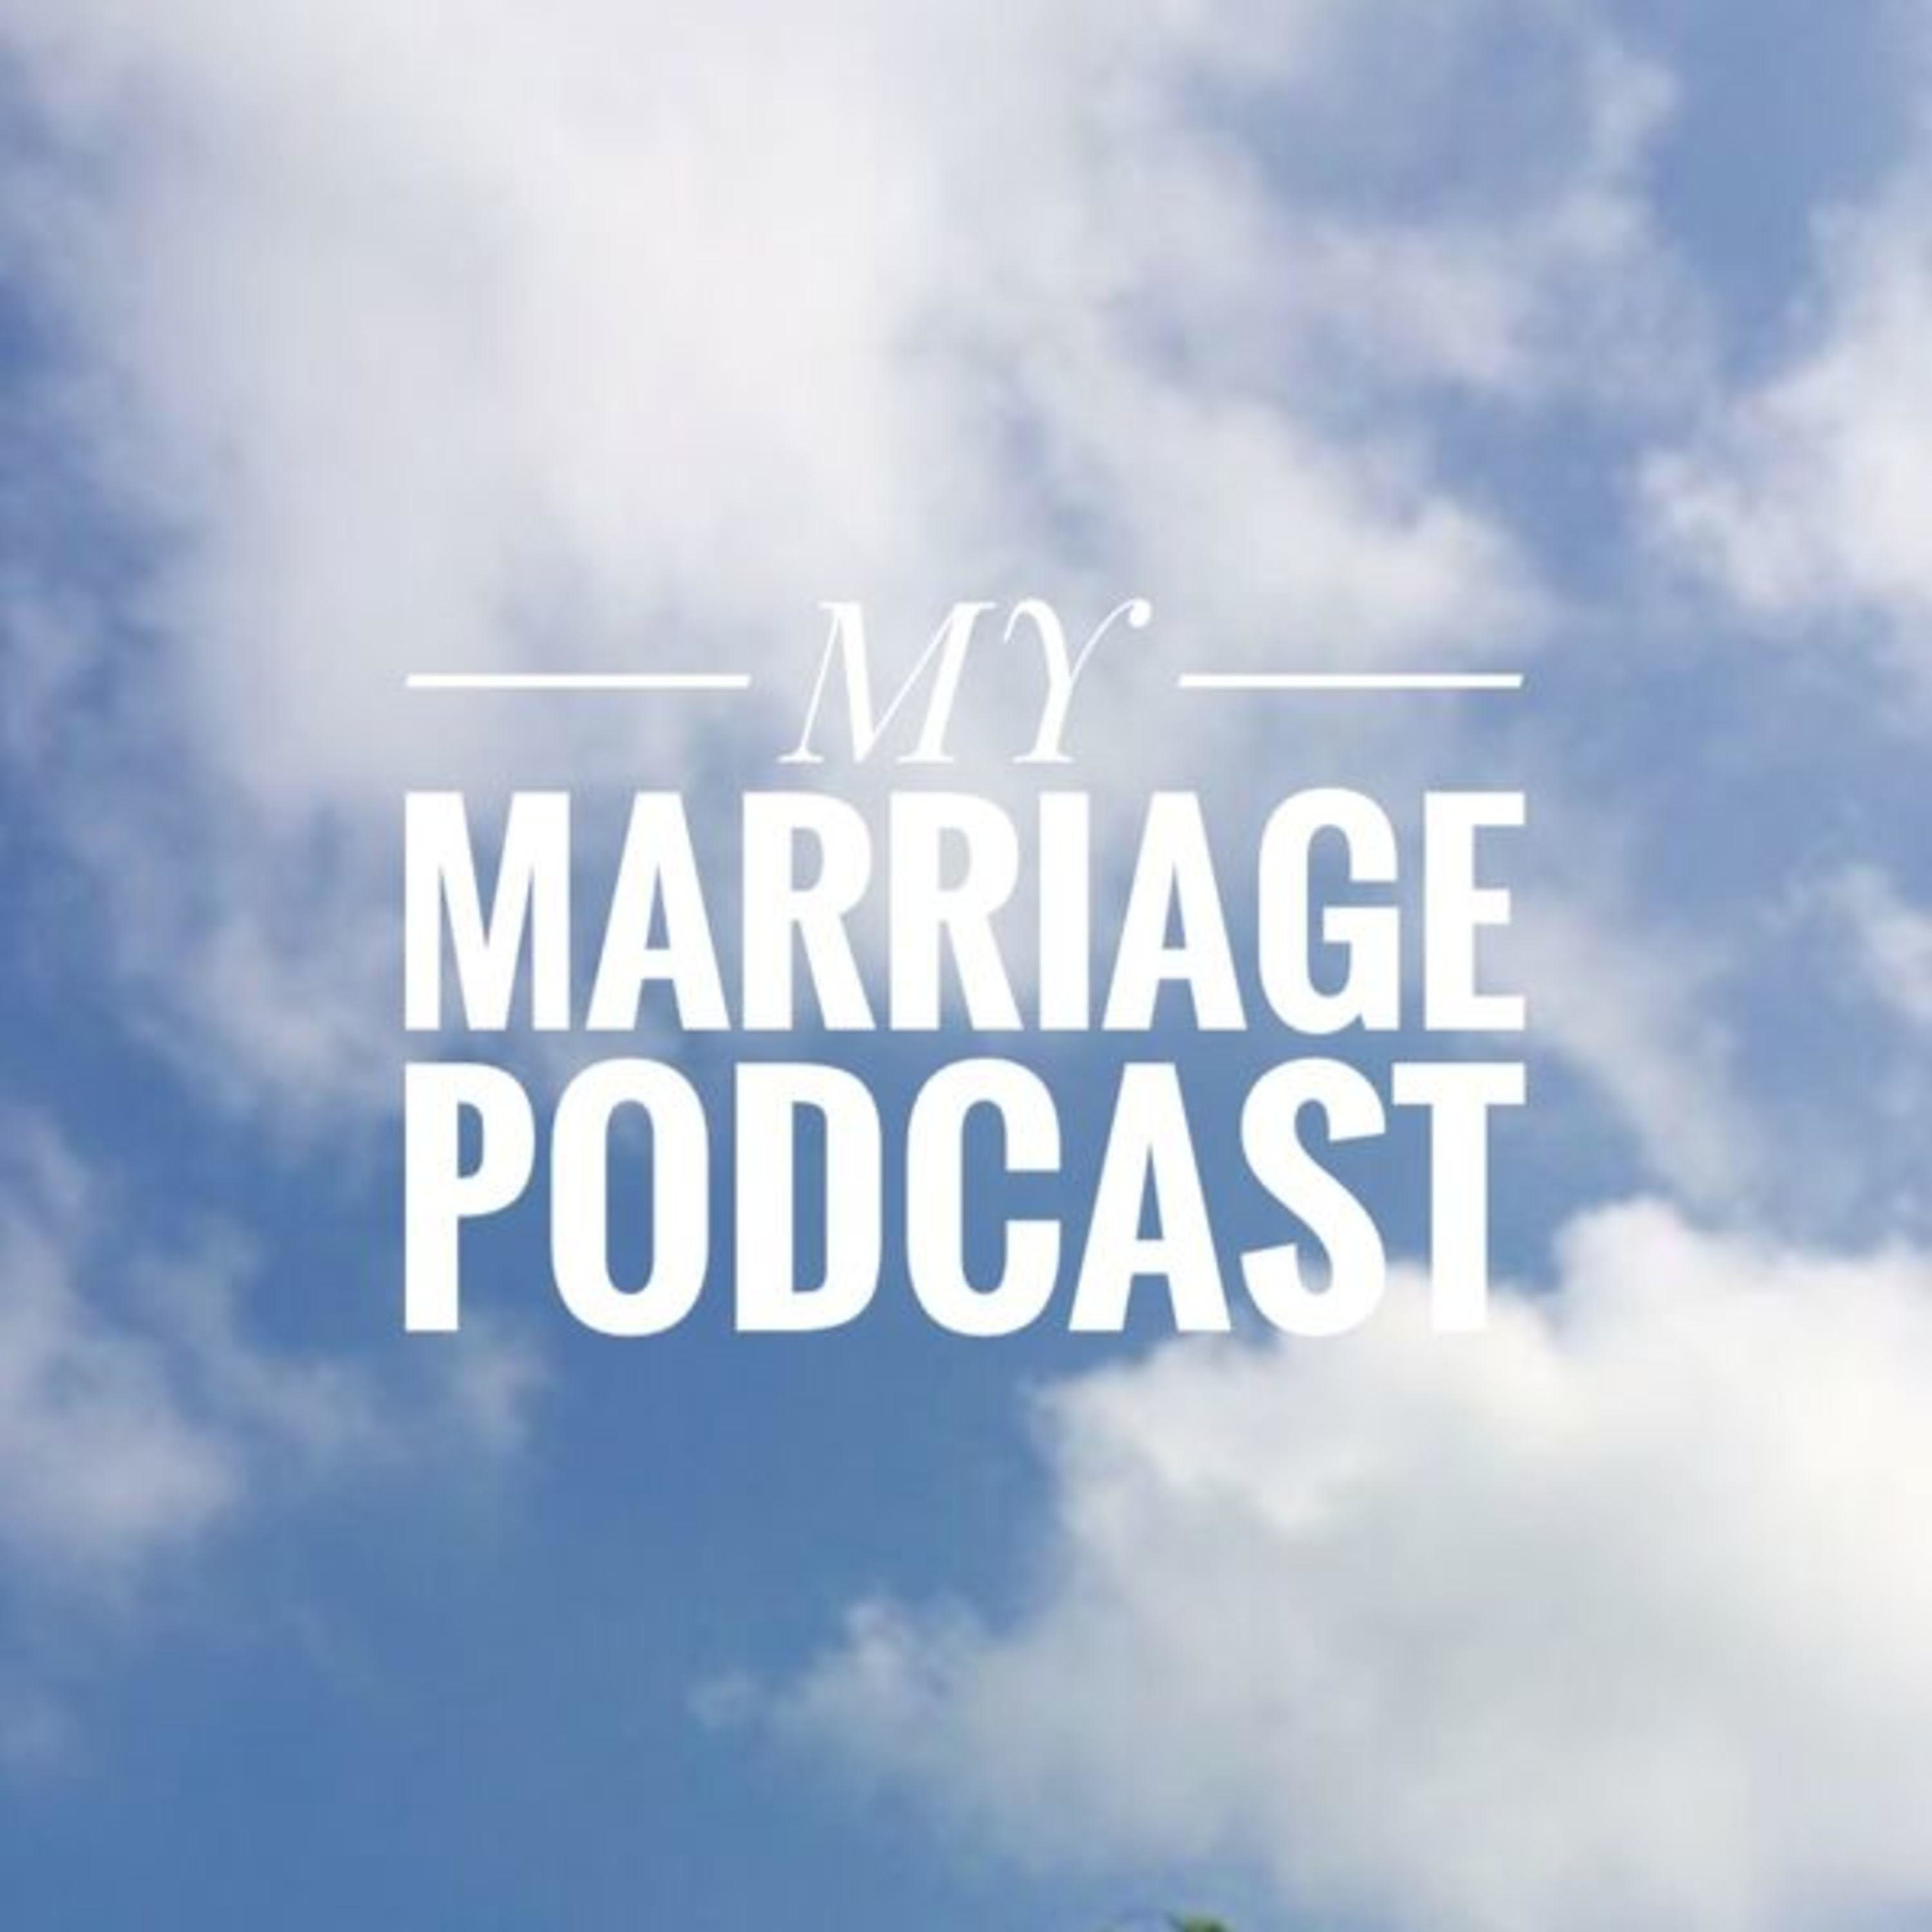 MyMarriage Podcast on Jamit